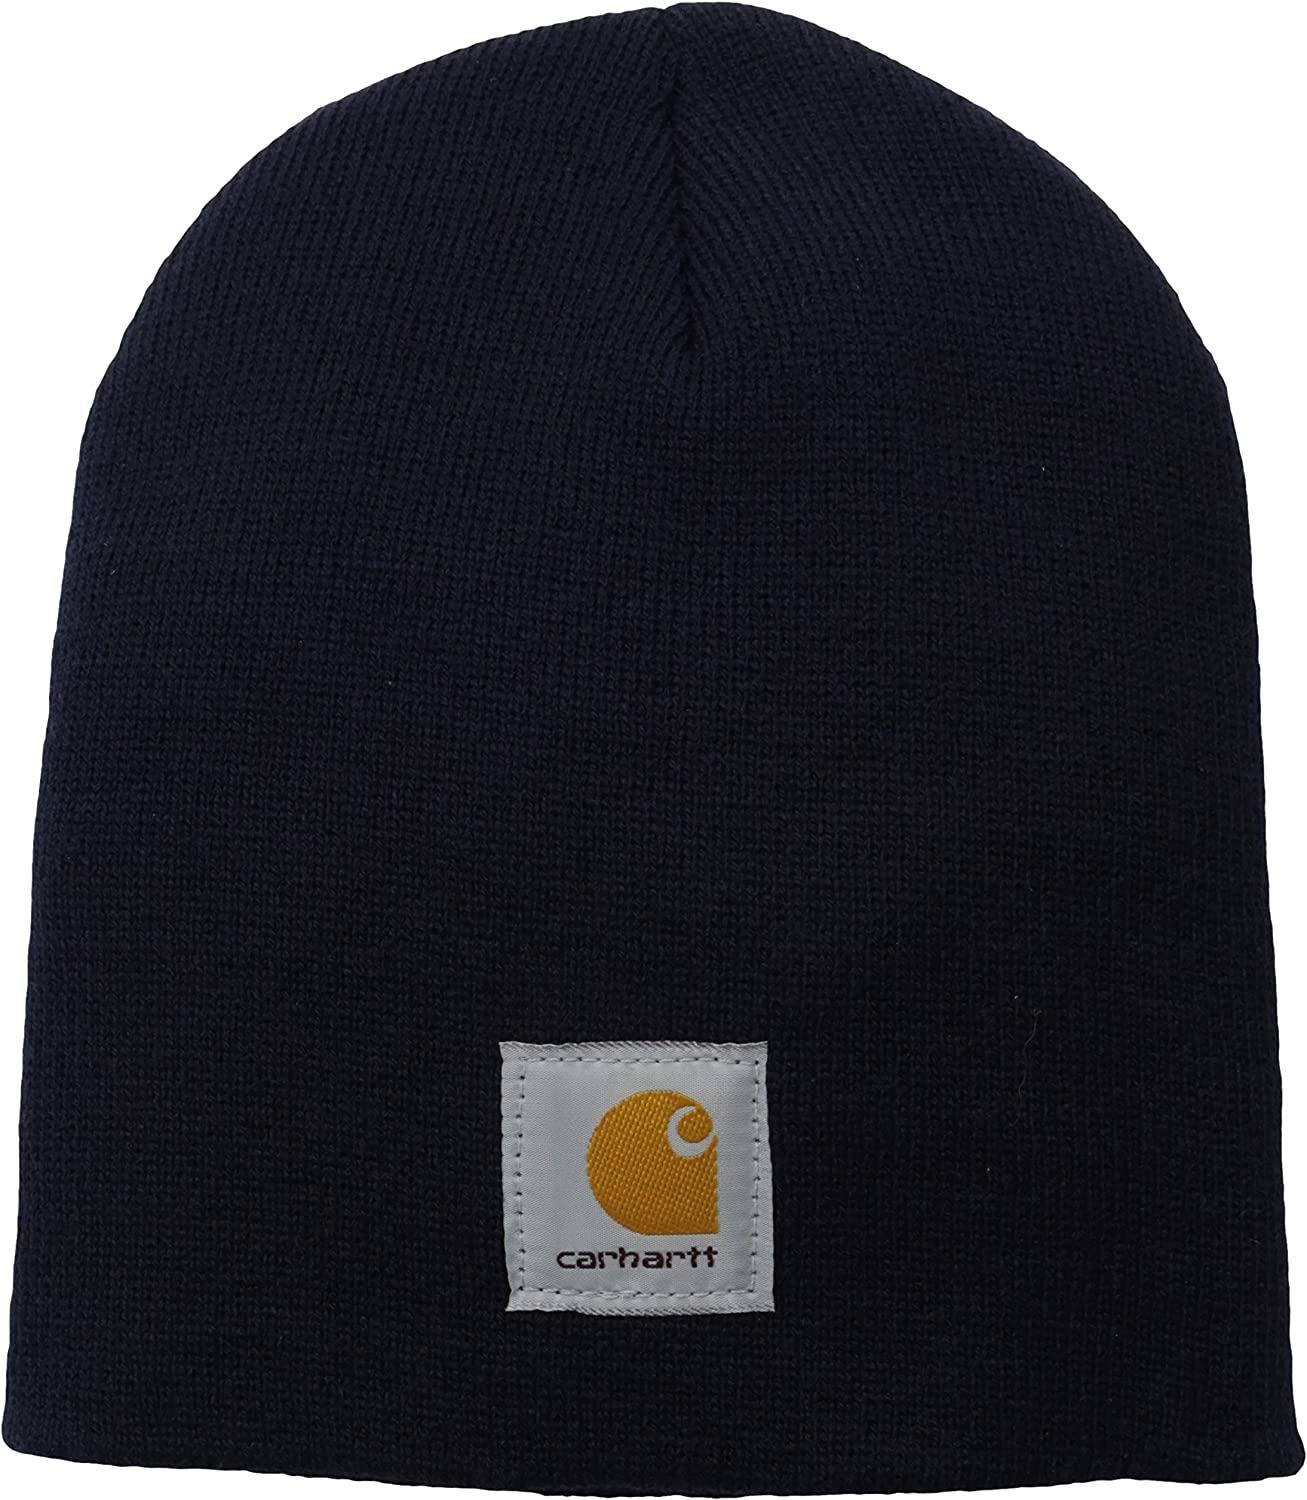 Carhartt Men's Acrylic Knit Hat A205, Navy, One Size at  Men's Clothing store: Safety Equipment